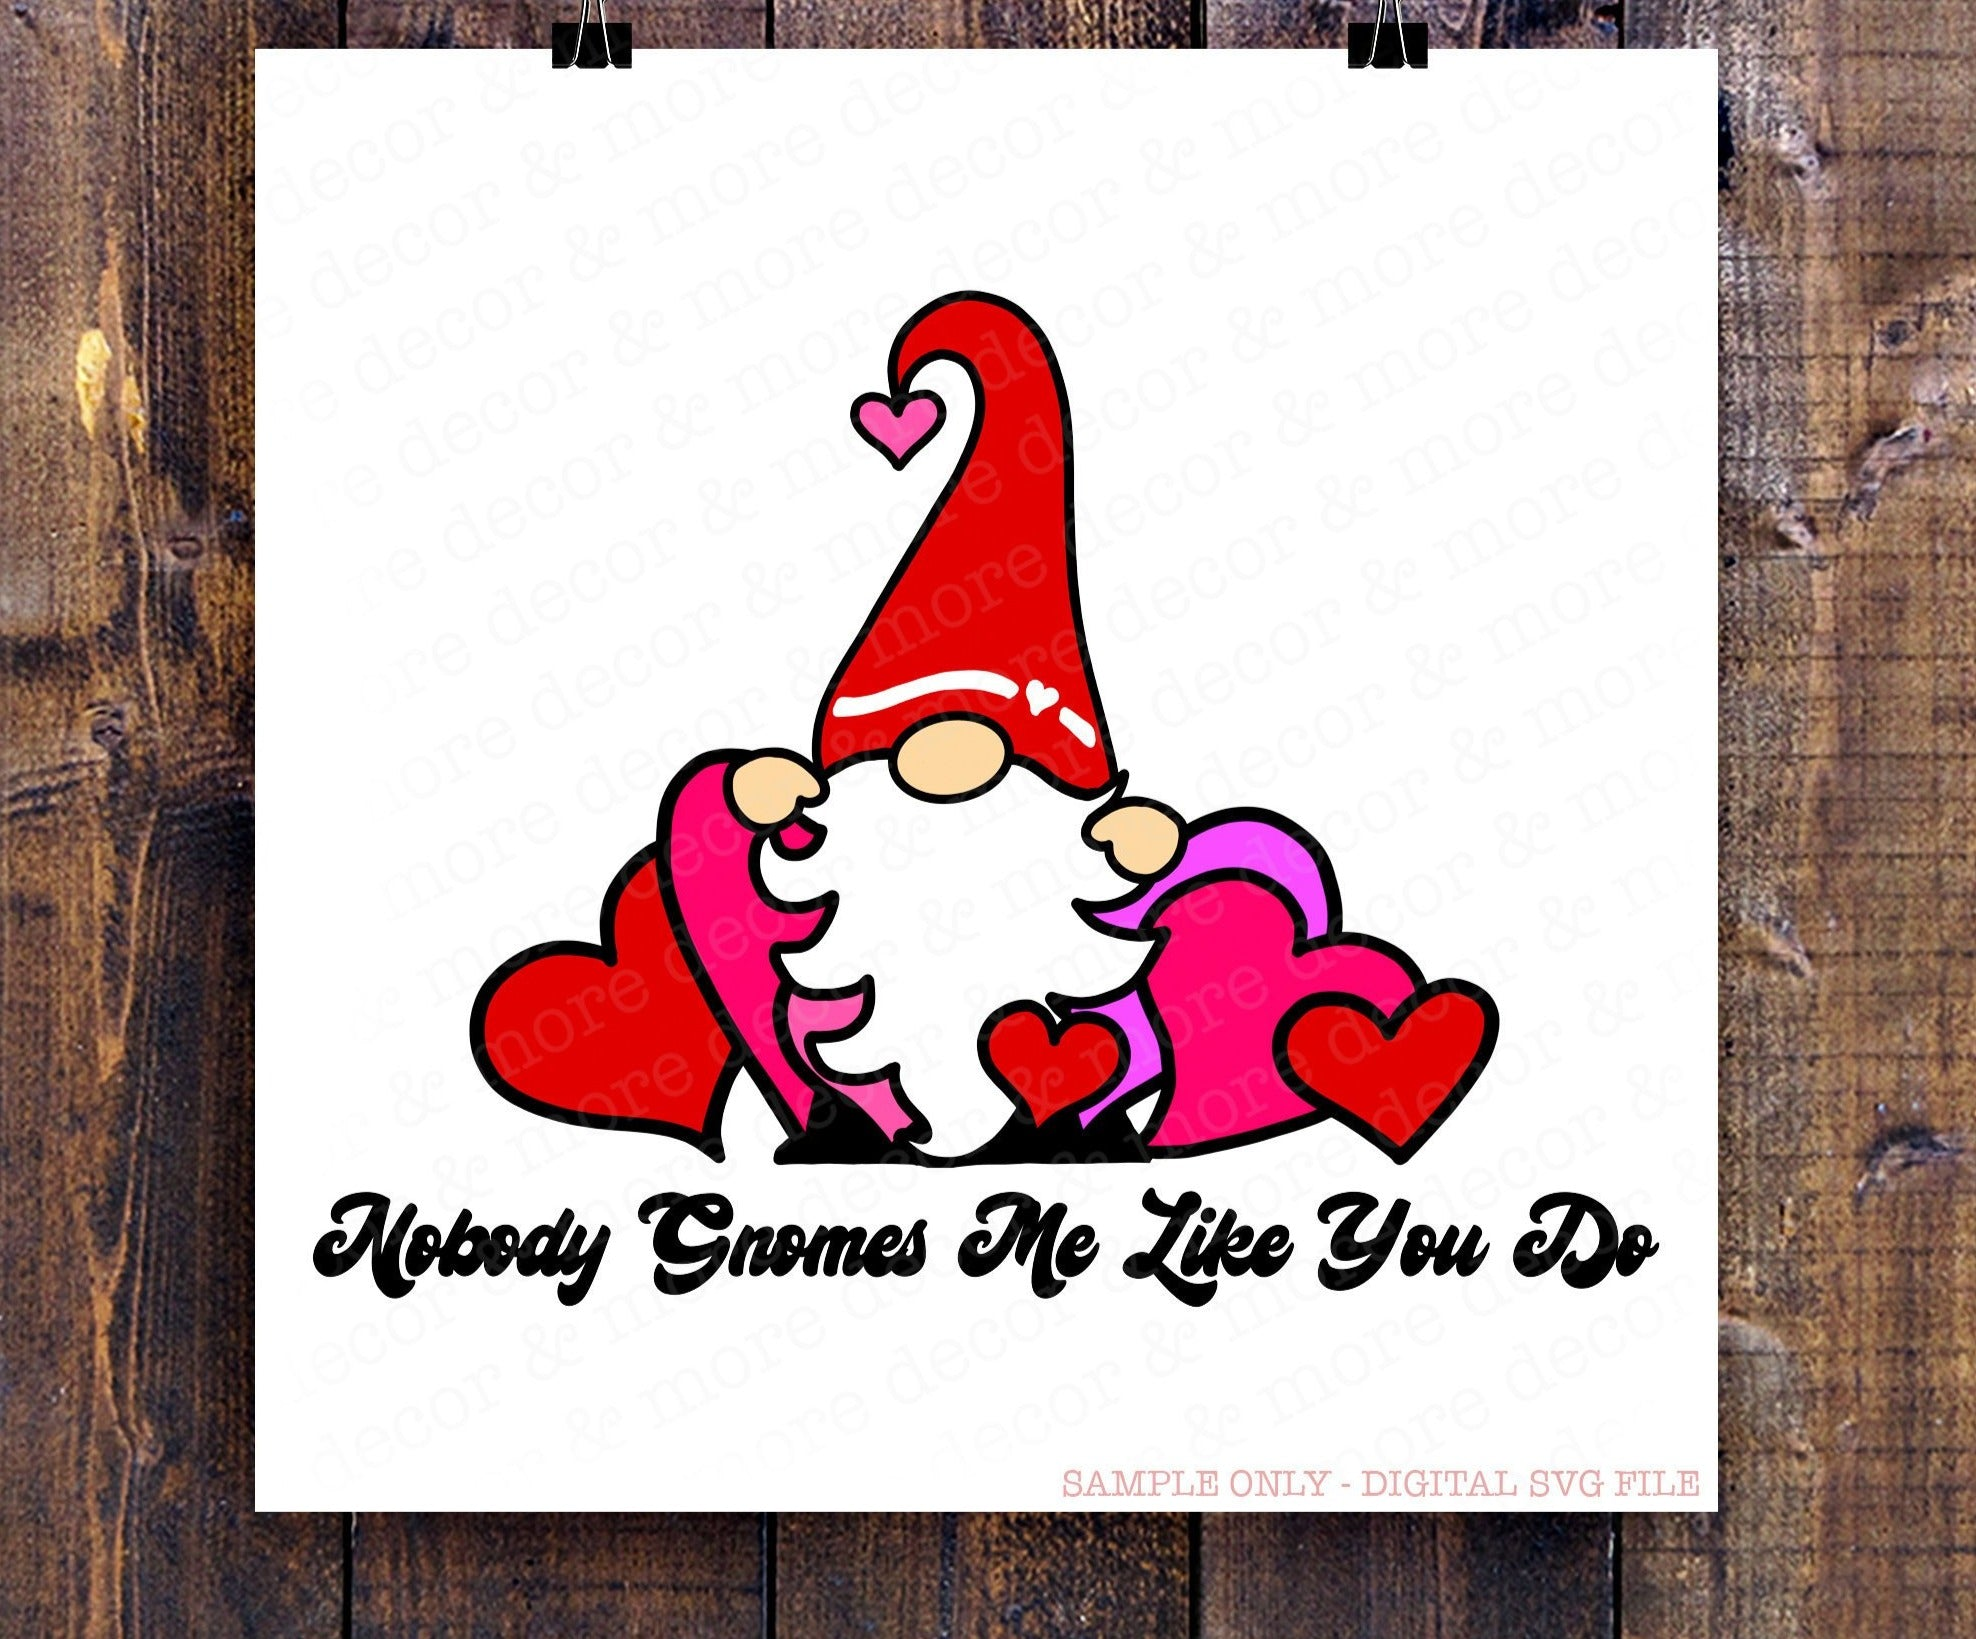 GNOME SVG, Valentine Gnome SVG File, Gnome SVG for Valentine's Day, Valentine Card Gnome SVG Cut File, Gnome with Hearts Svg, Nobody Gnomes Me Like You